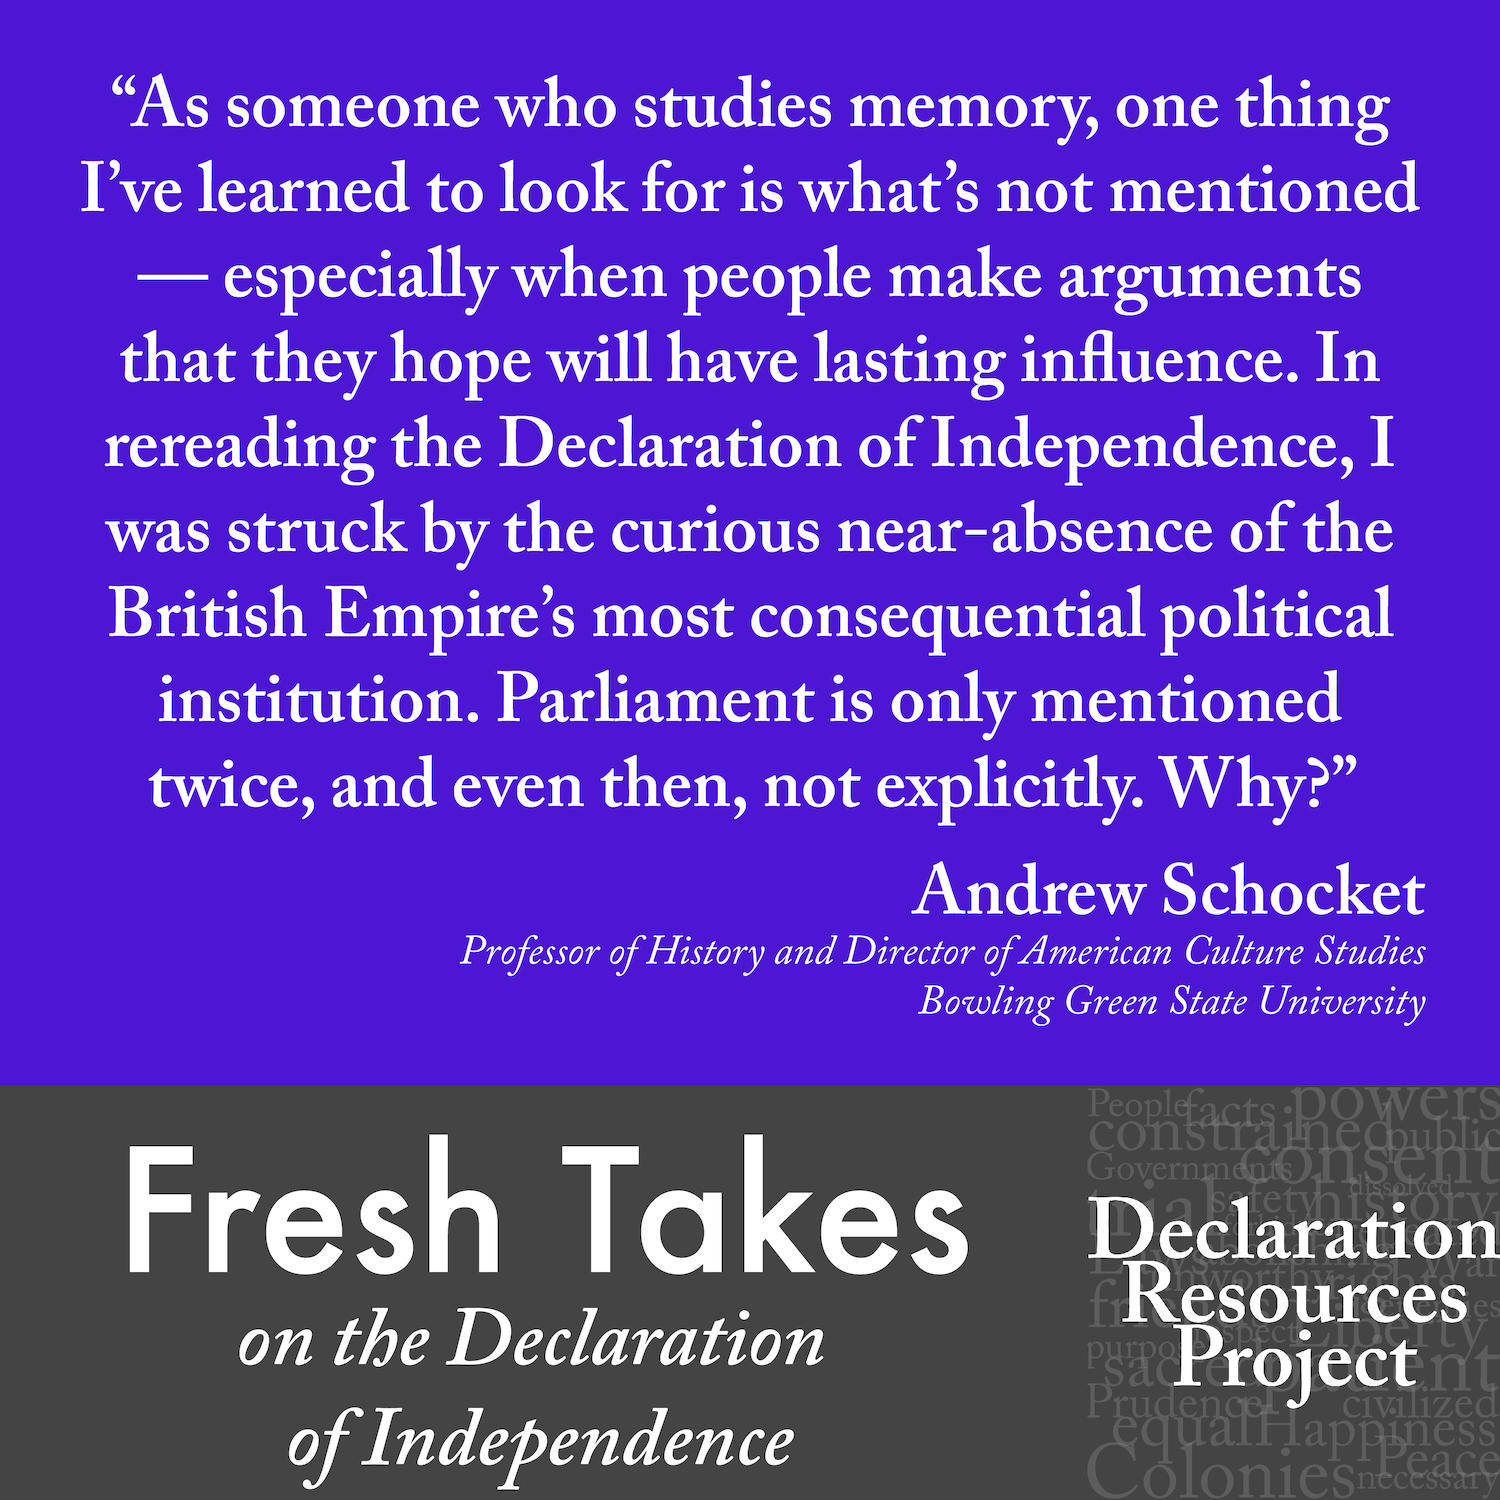 Andrew Schocket's Fresh Take on the Declaration of Independence